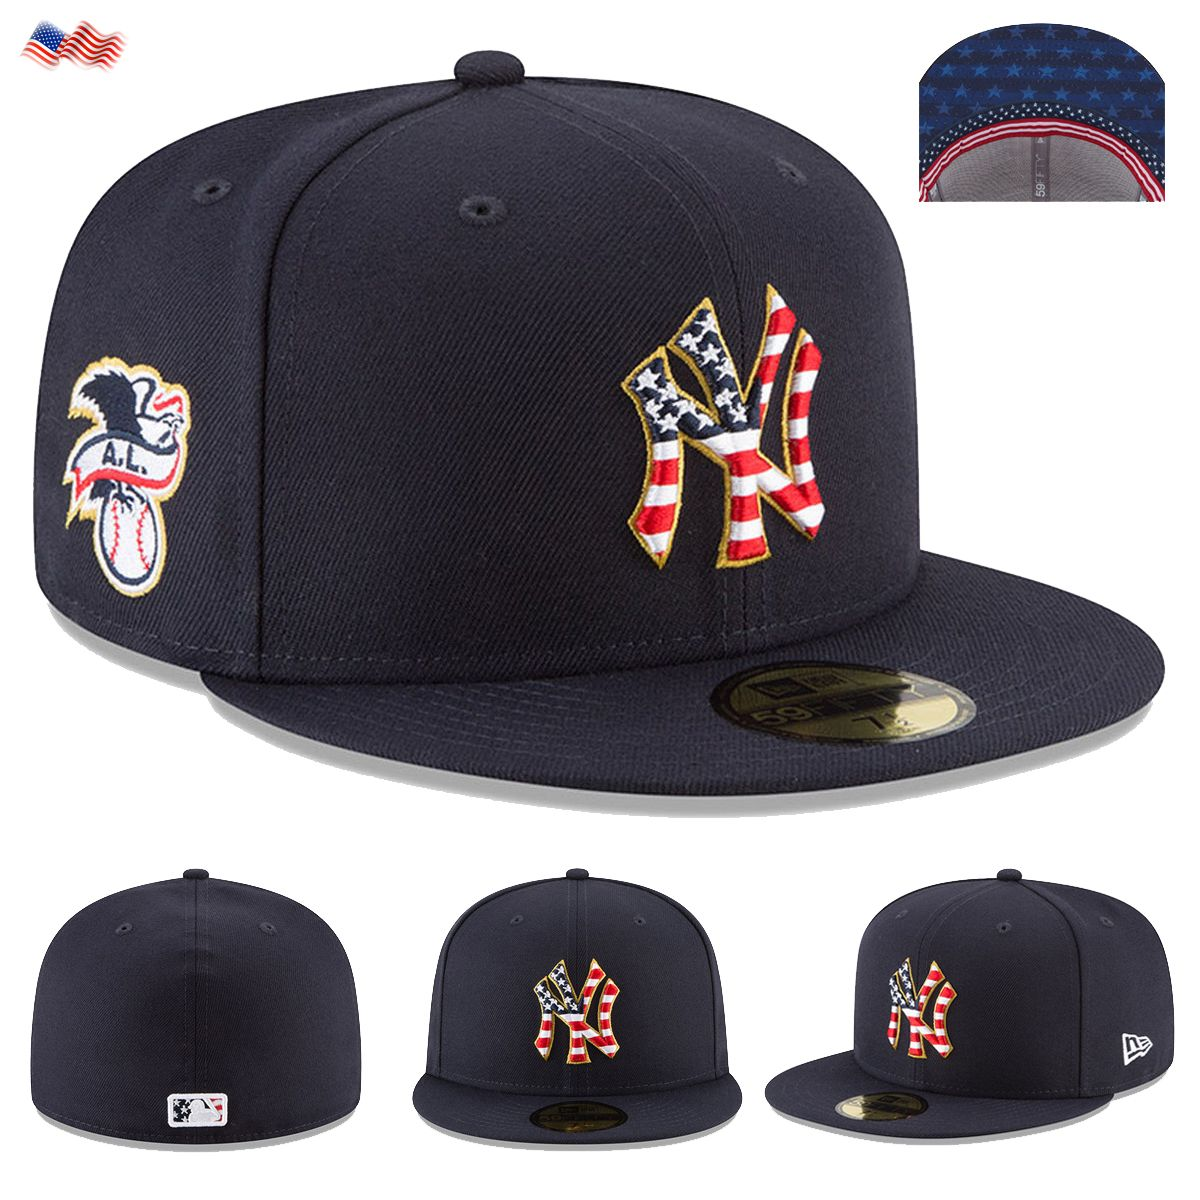 e2a3453b3b3c6 Celebrate the 4th of July 2018 holiday in style when you grab this Stars    Stripes New York Yankees On-Field 59FIFTY Fitted Hat from New Era.